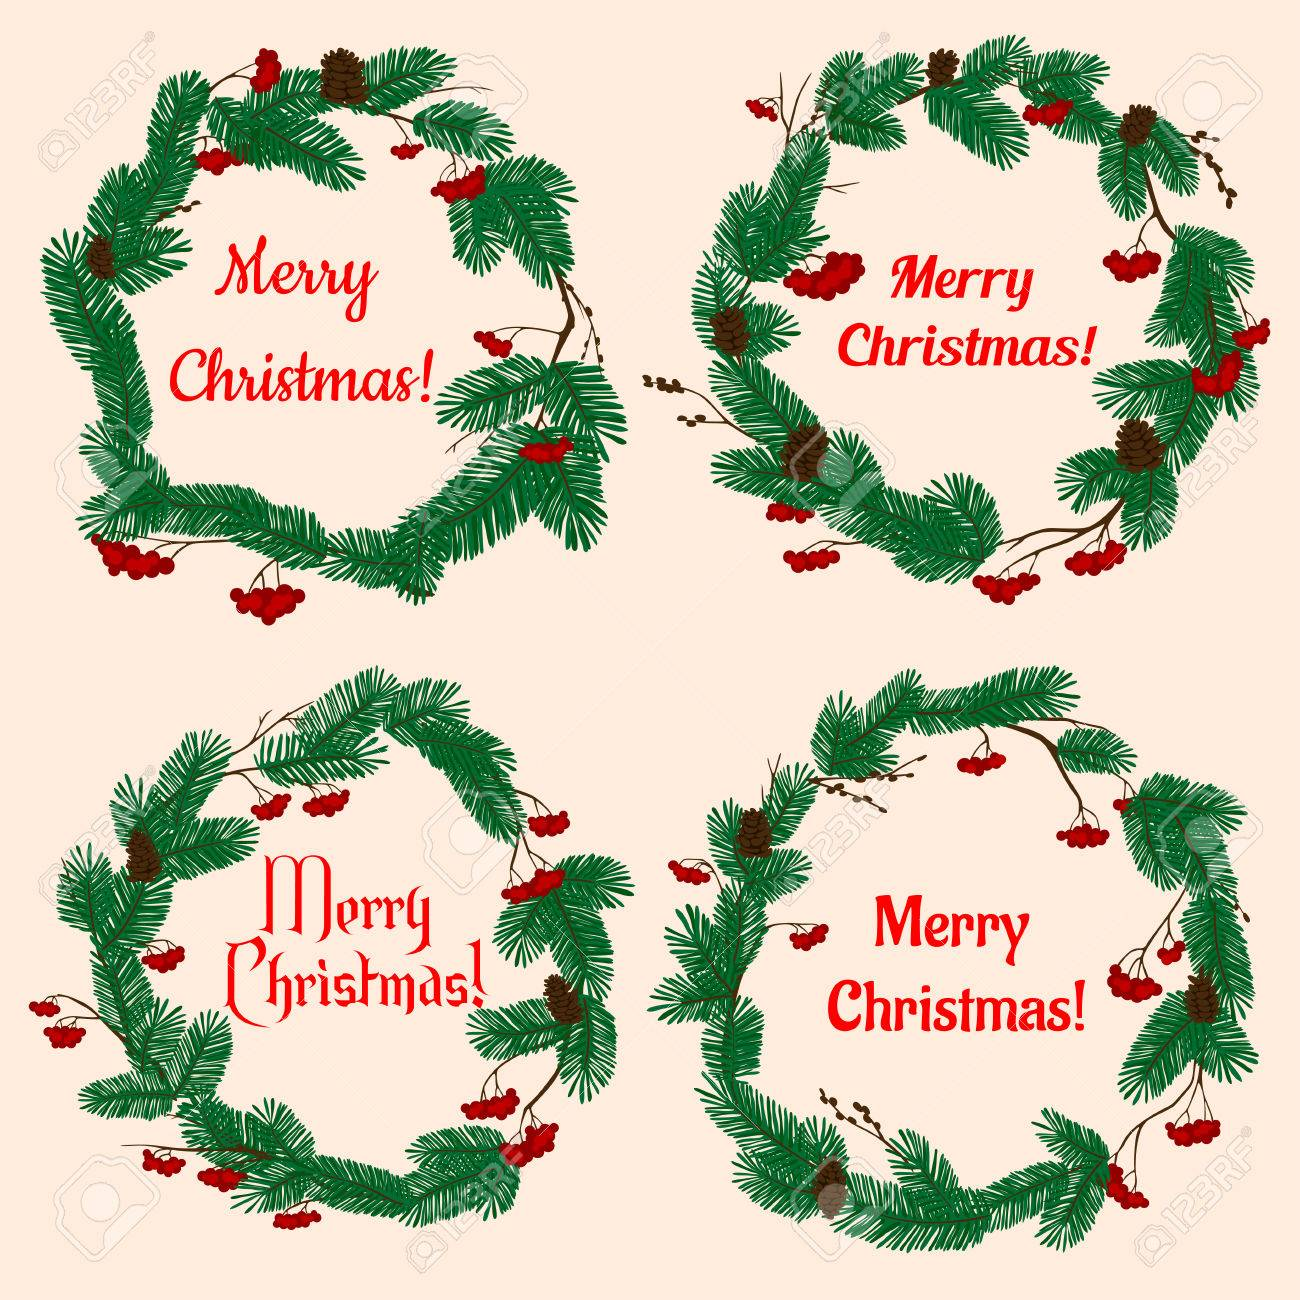 Christmas Wreaths With Winter Holiday Decorations With Lush Green ...